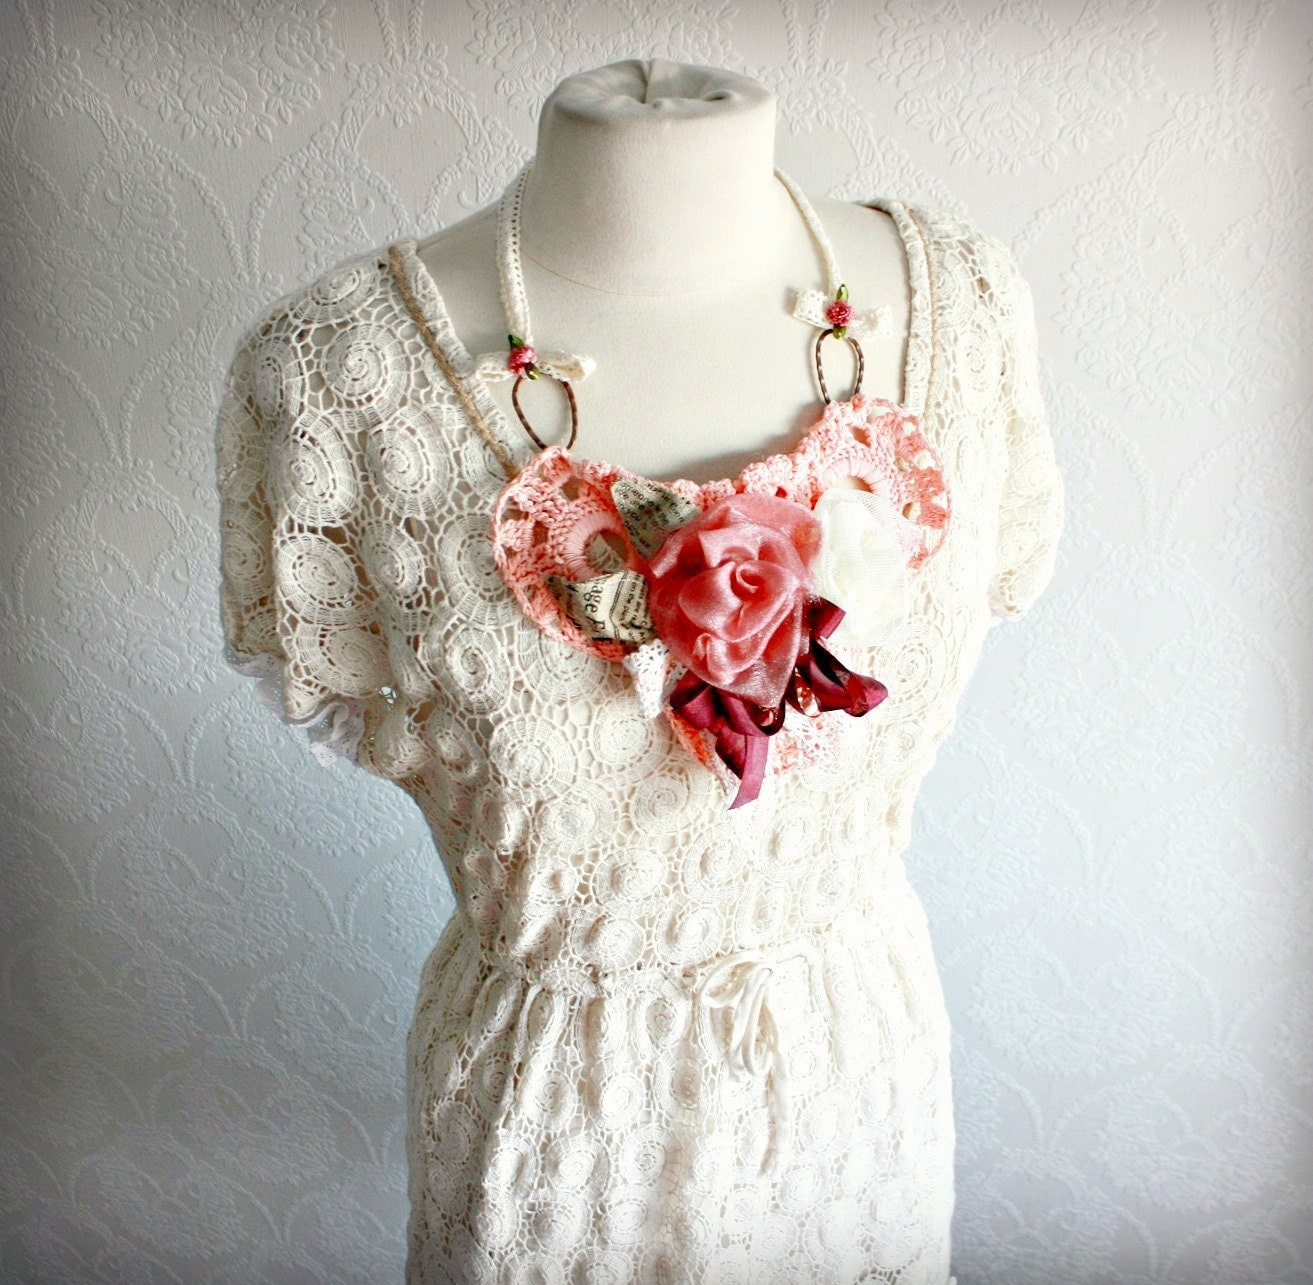 Women S Cream Lace Dress Shabby Chic Clothing Upcycled Eco